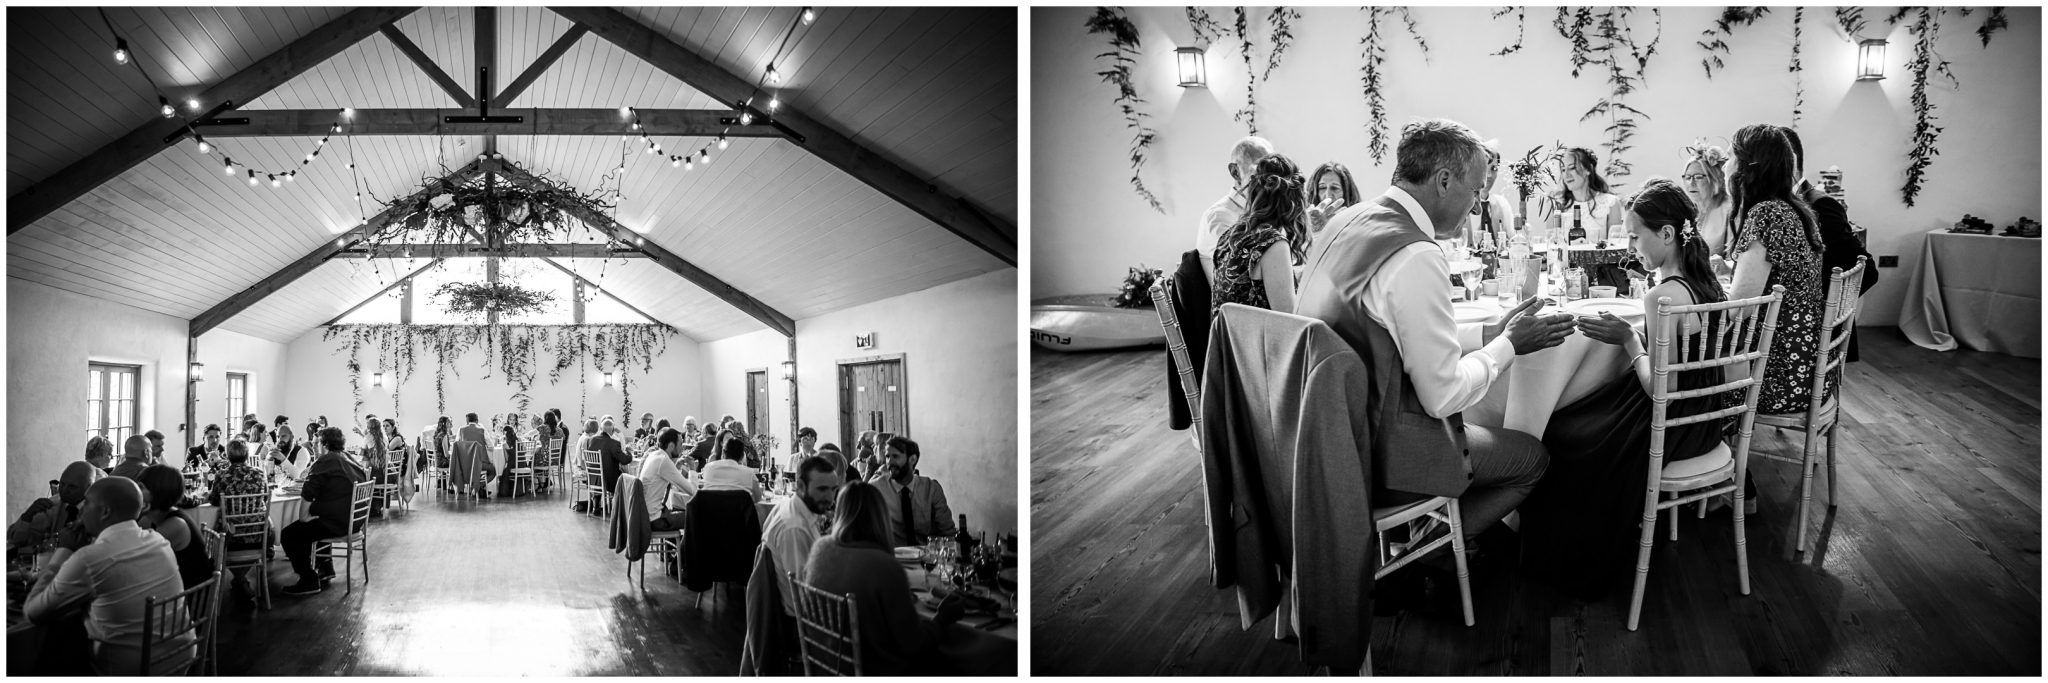 Black and white photos of barn interior for wedding breakfast